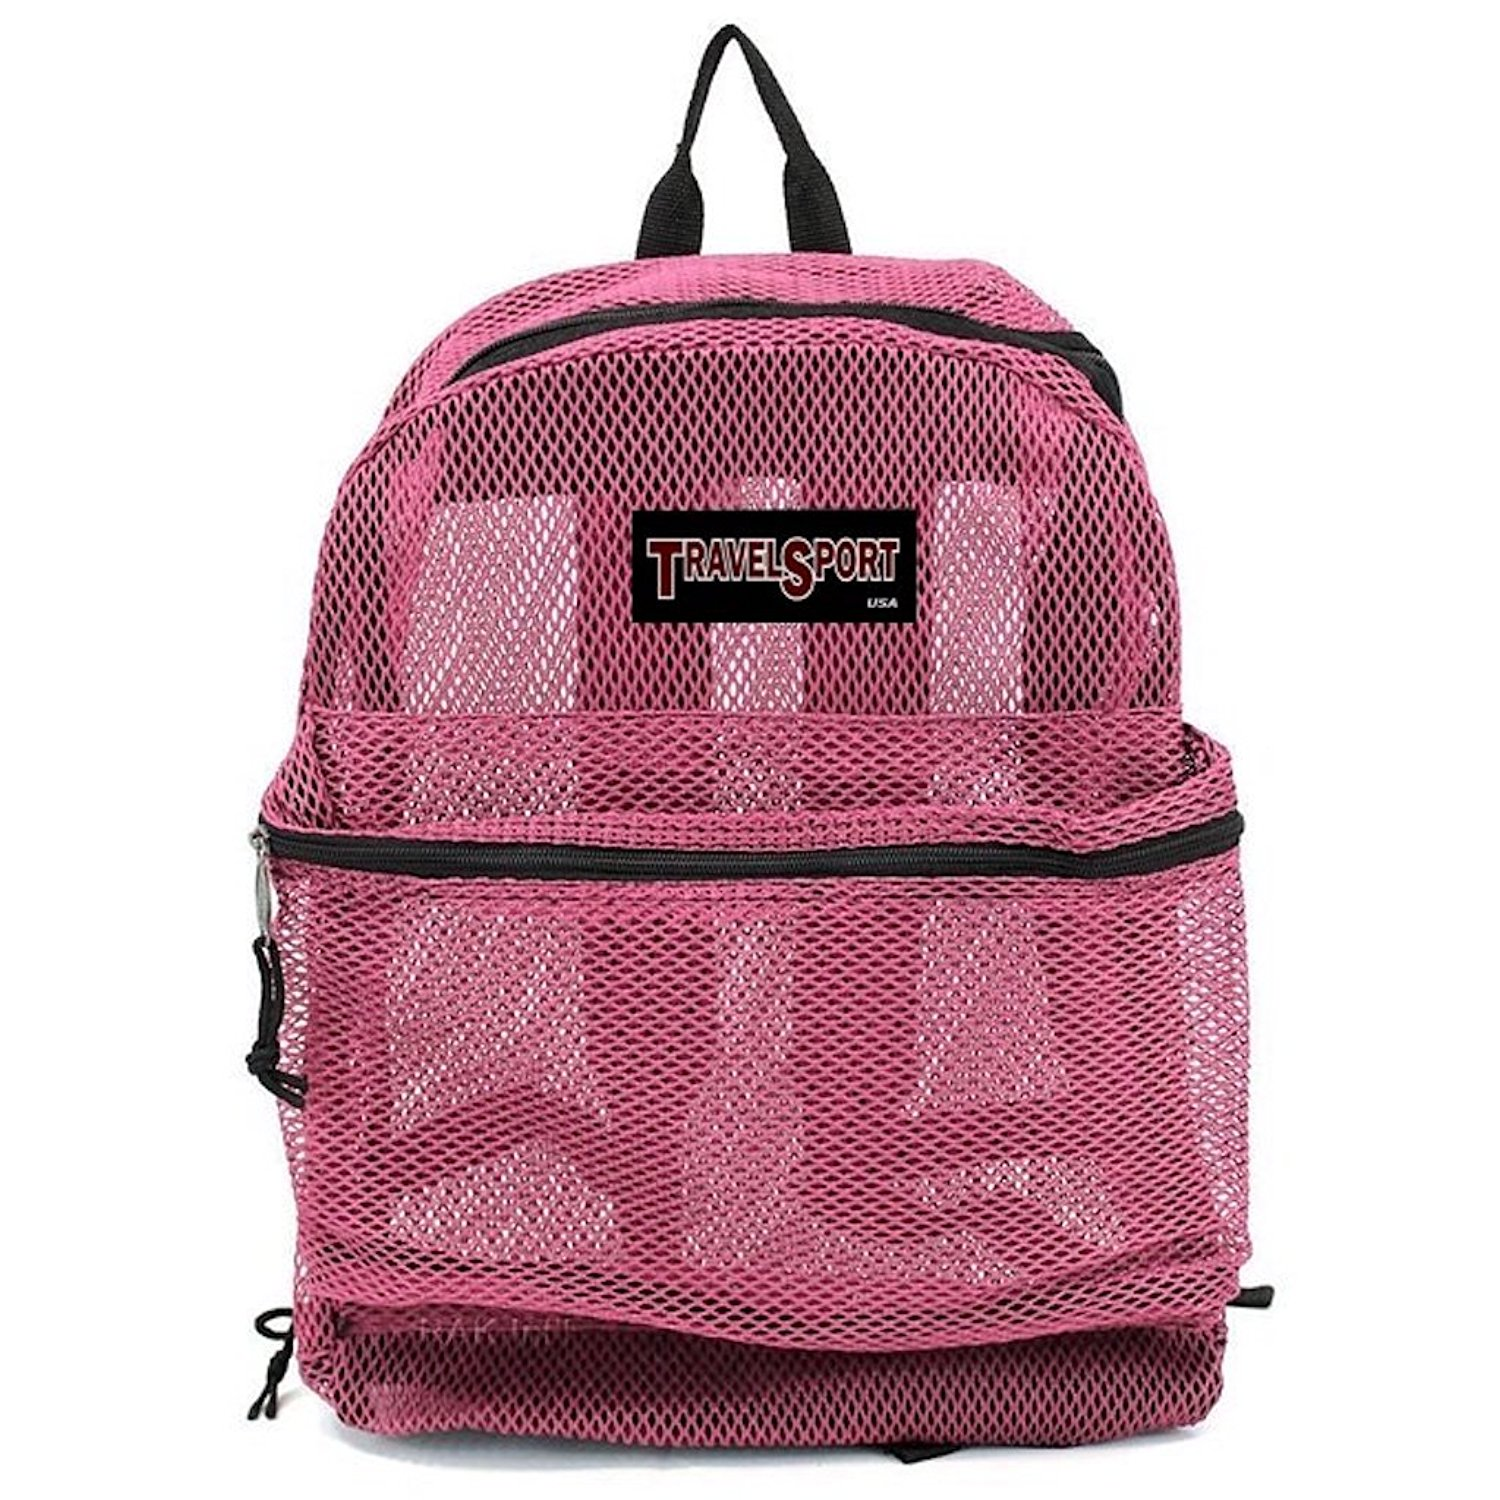 Travel Sport Transparent See Through Mesh Backpack/ School Bag Hot Pink